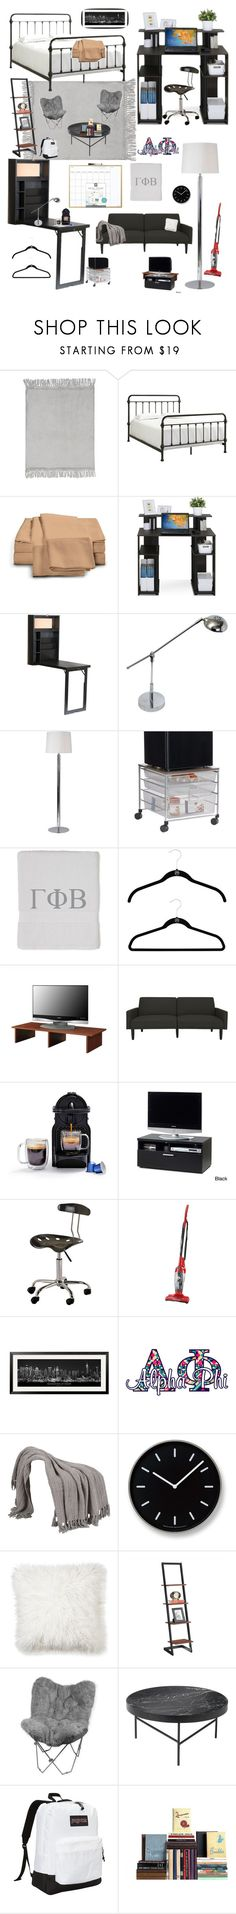 """College Dorms"" by kotnourka ❤ liked on Polyvore featuring interior, interiors, interior design, home, home decor, interior decorating, PBteen, Weston, Southern Enterprises and Simple Designs"